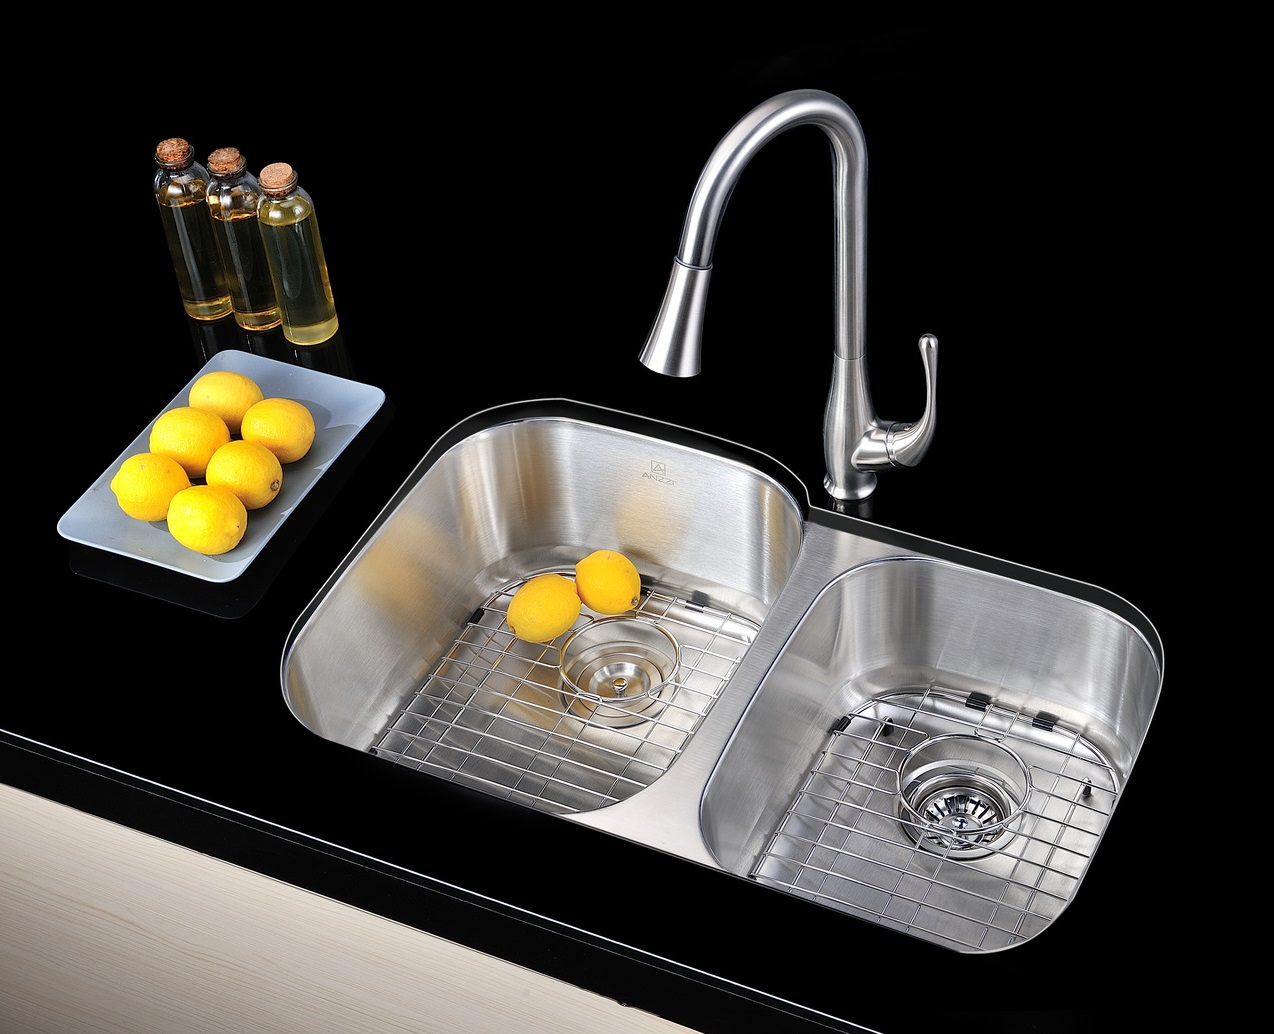 Moor Dual Basin Under Mount Kitchen Sink K-AZ3220-3B from Anzzi